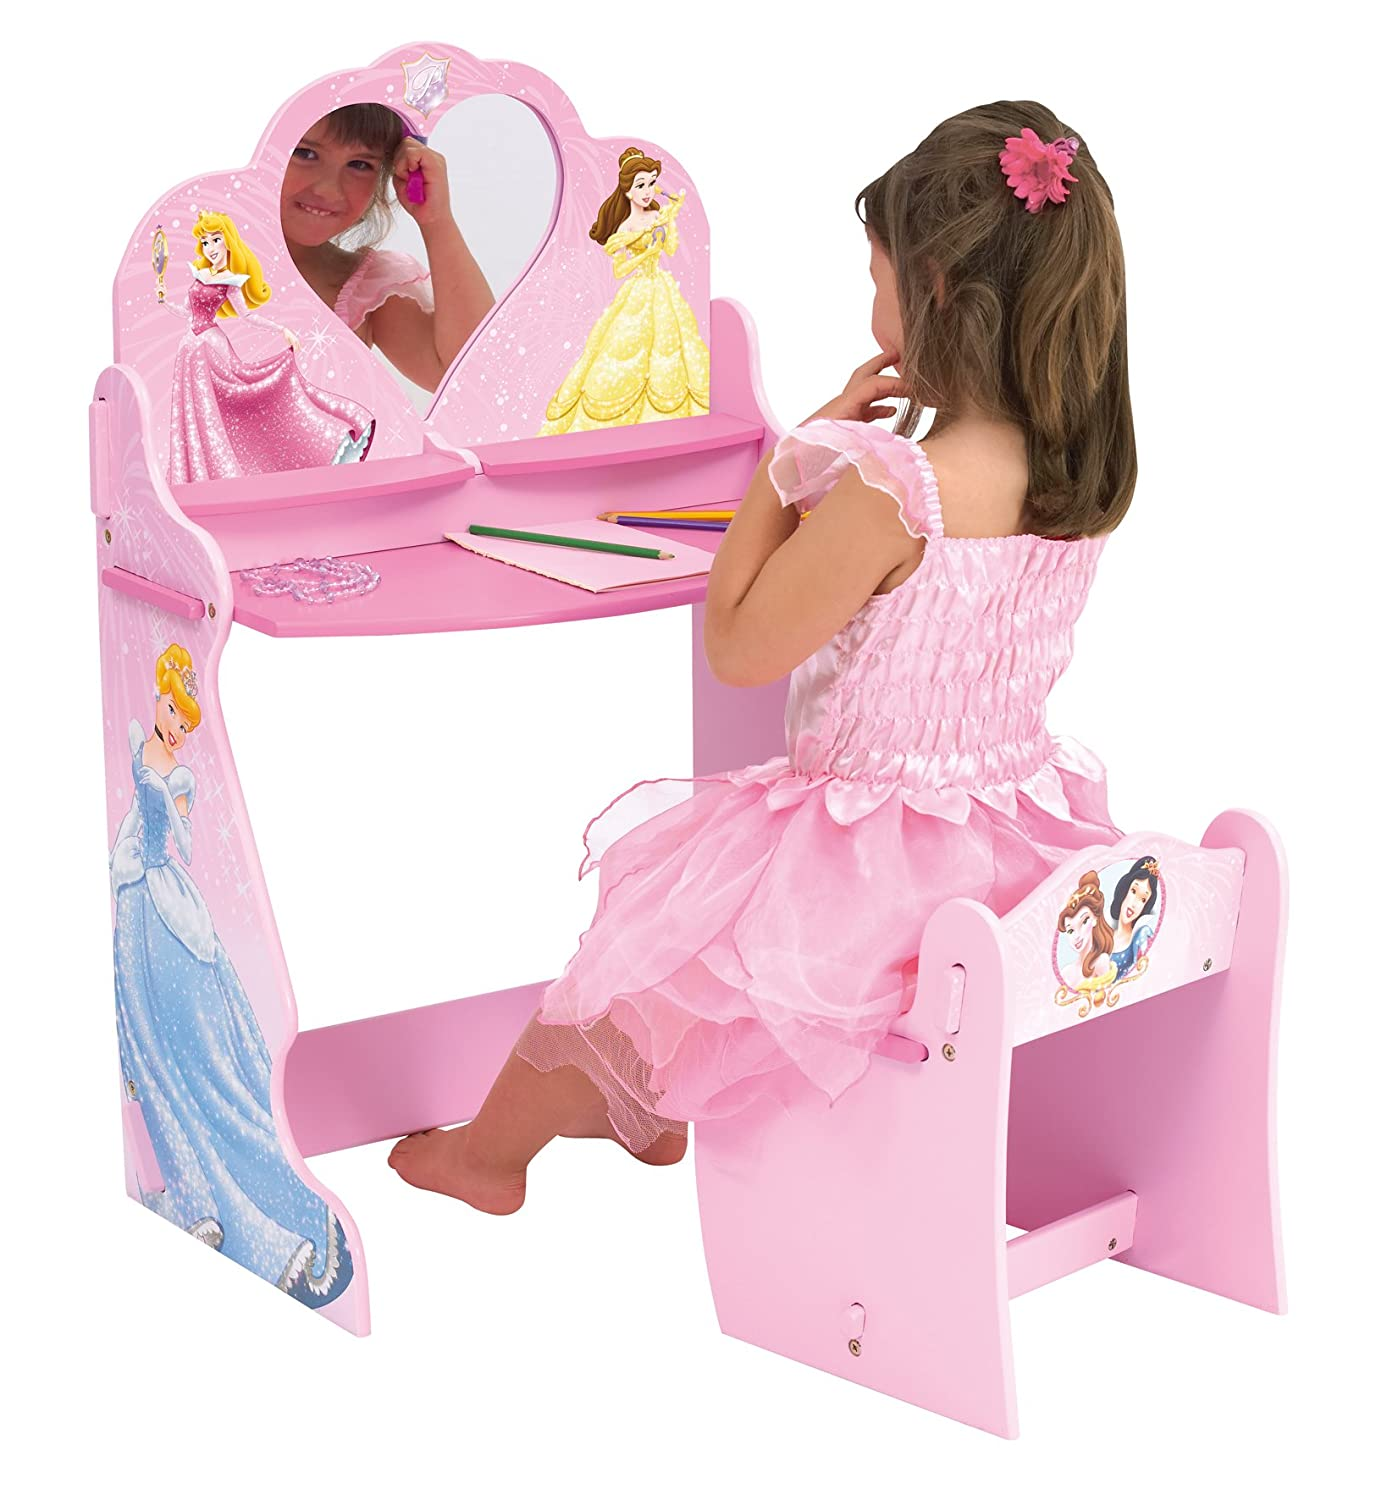 Amazon Disney Princess Vanity Table Toys & Games